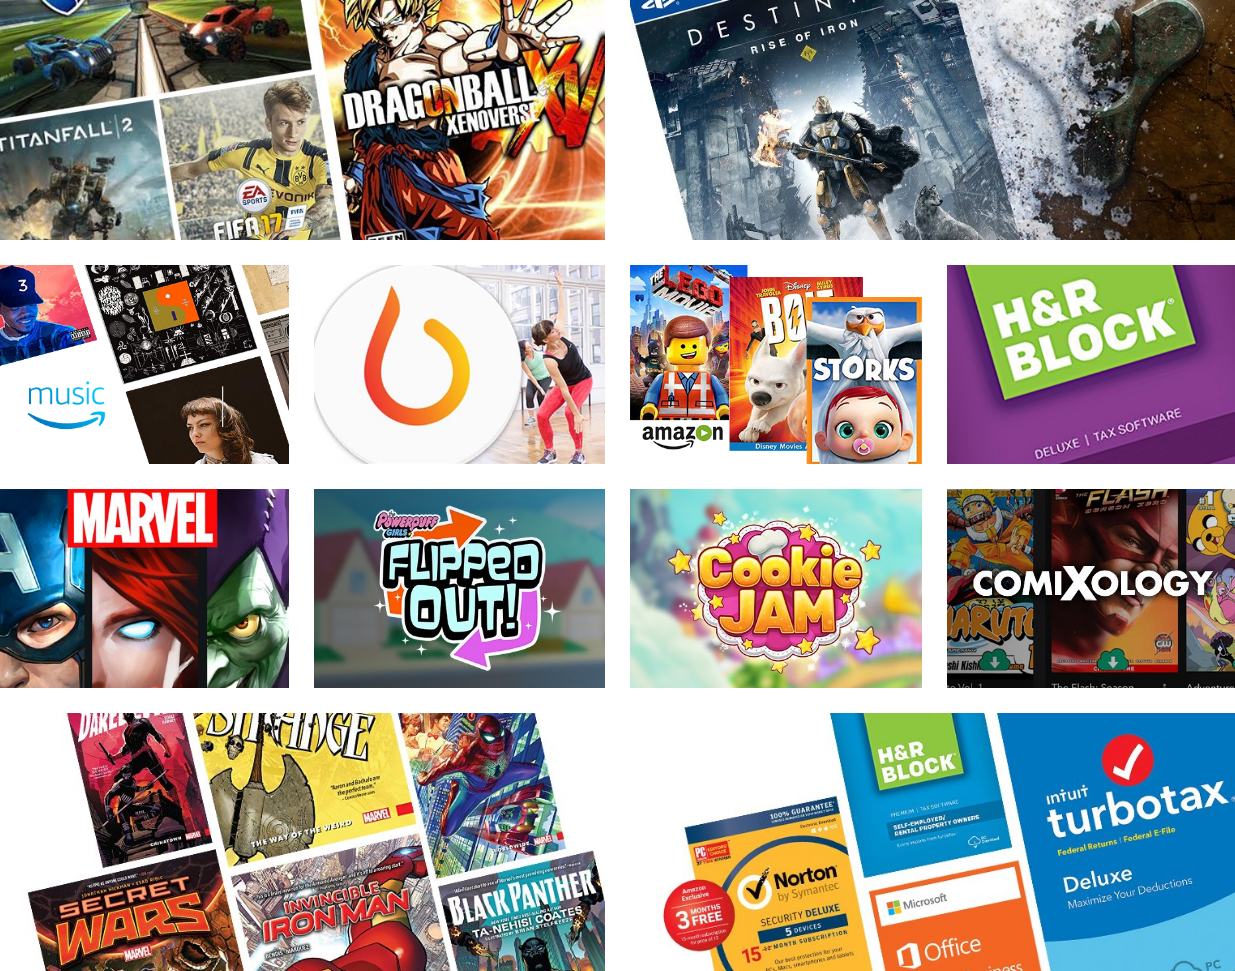 Amazoncom apps games - You Might Expect Amazon To Limit Content To Stuff That Can Be Had On Their Own Devices But That Doesn T Seem To Be The Case Here As The Company Is Also